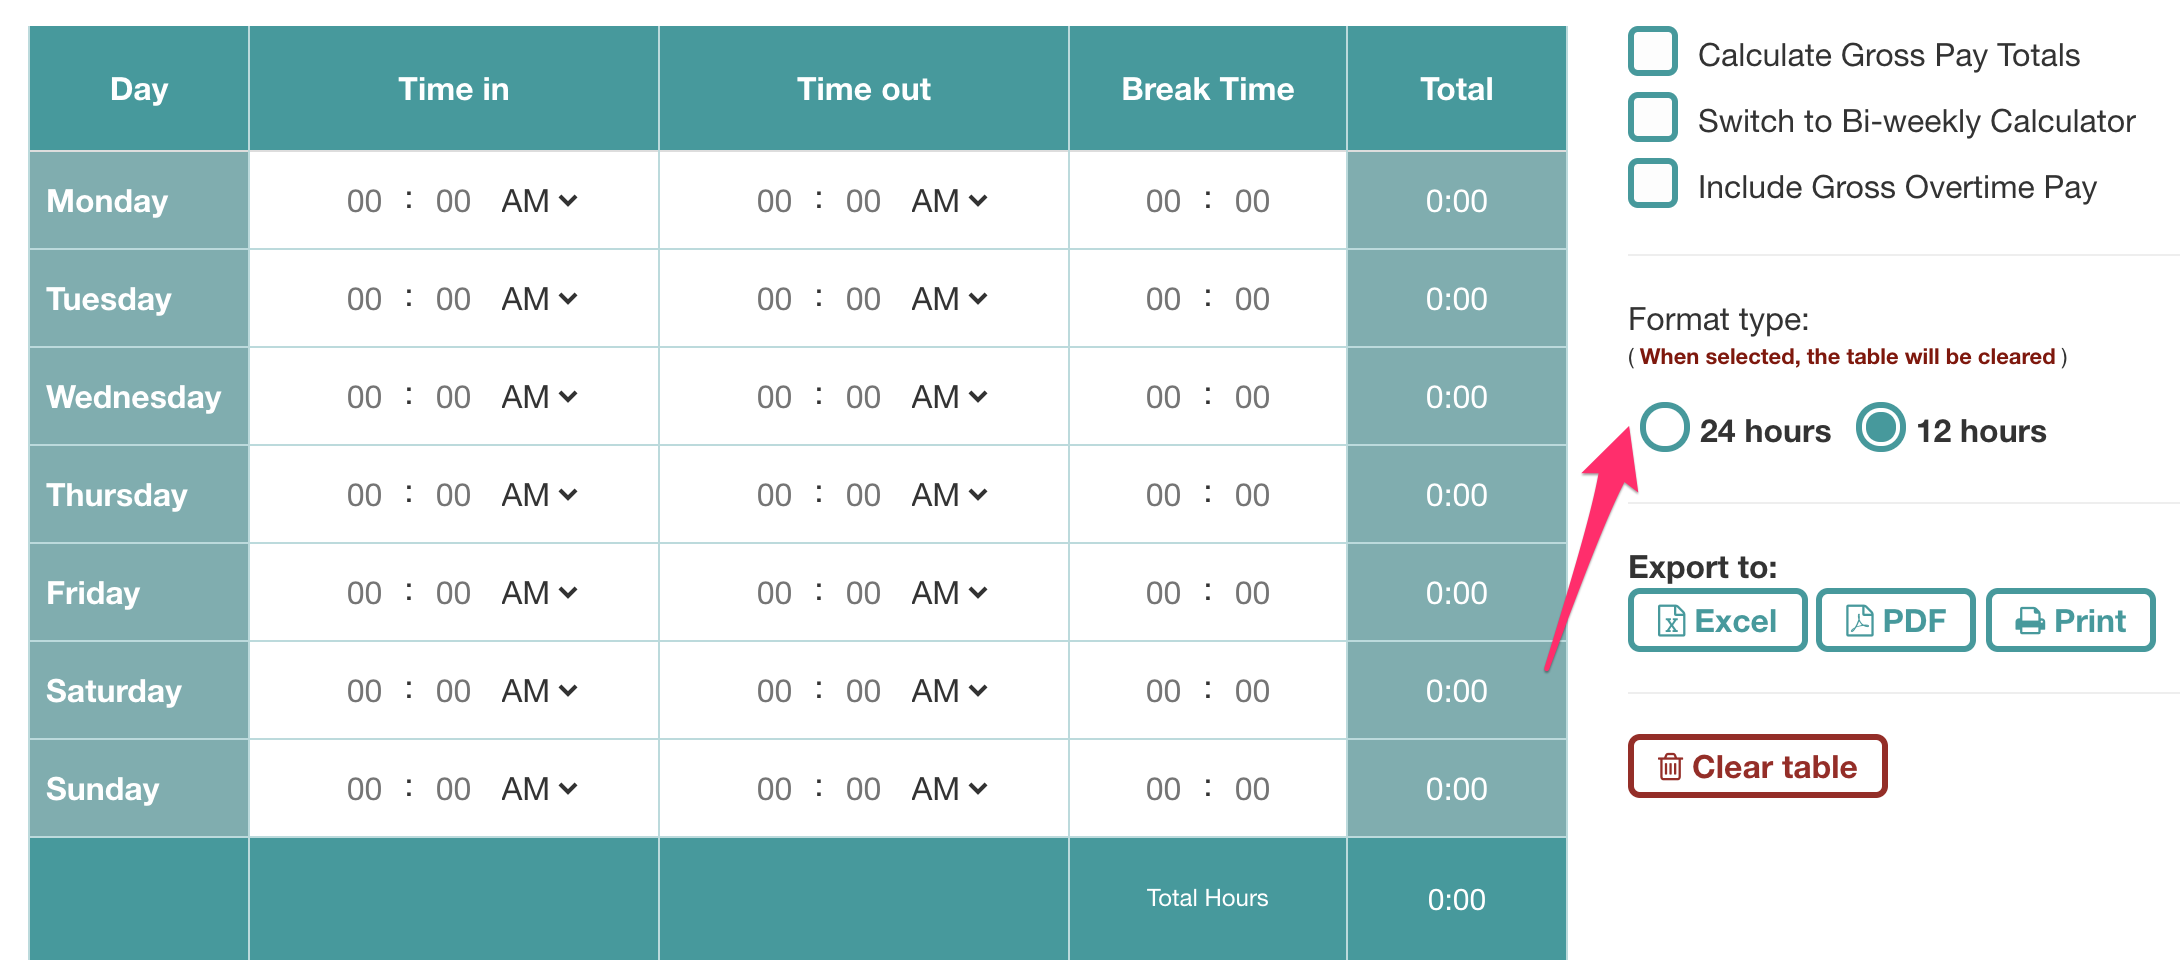 Time Format of the Timesheet Calculator